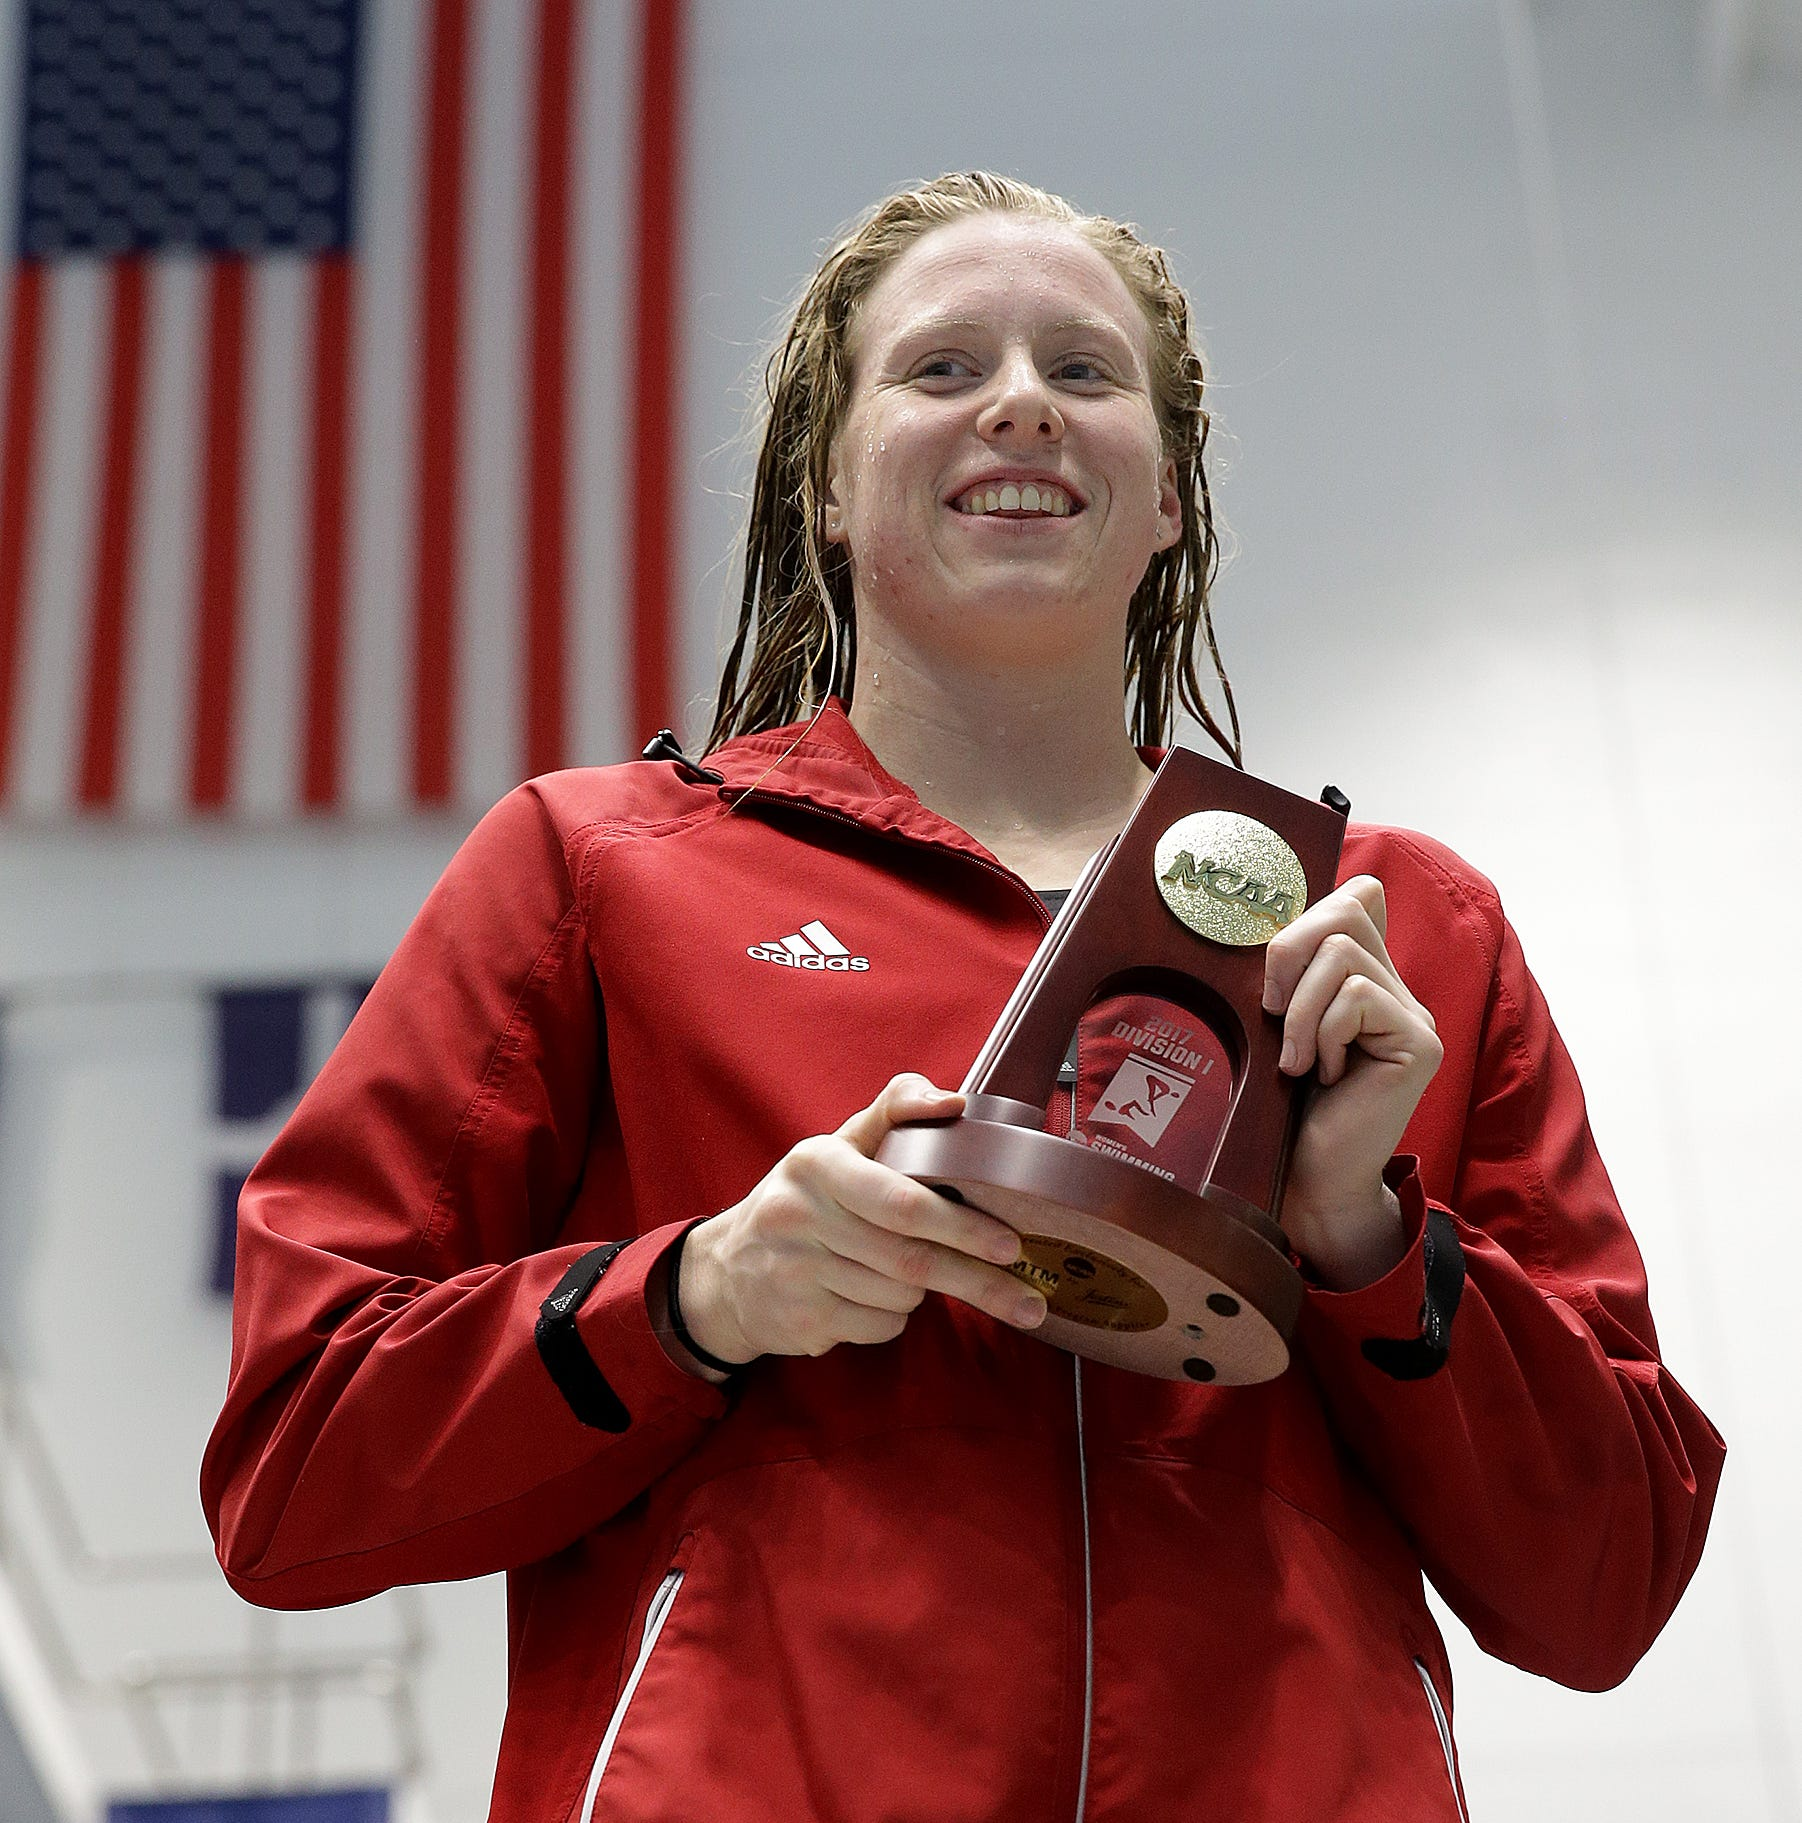 Lilly King could have cashed in off Olympics, instead she stayed at IU all four years. 'I kept my word.'